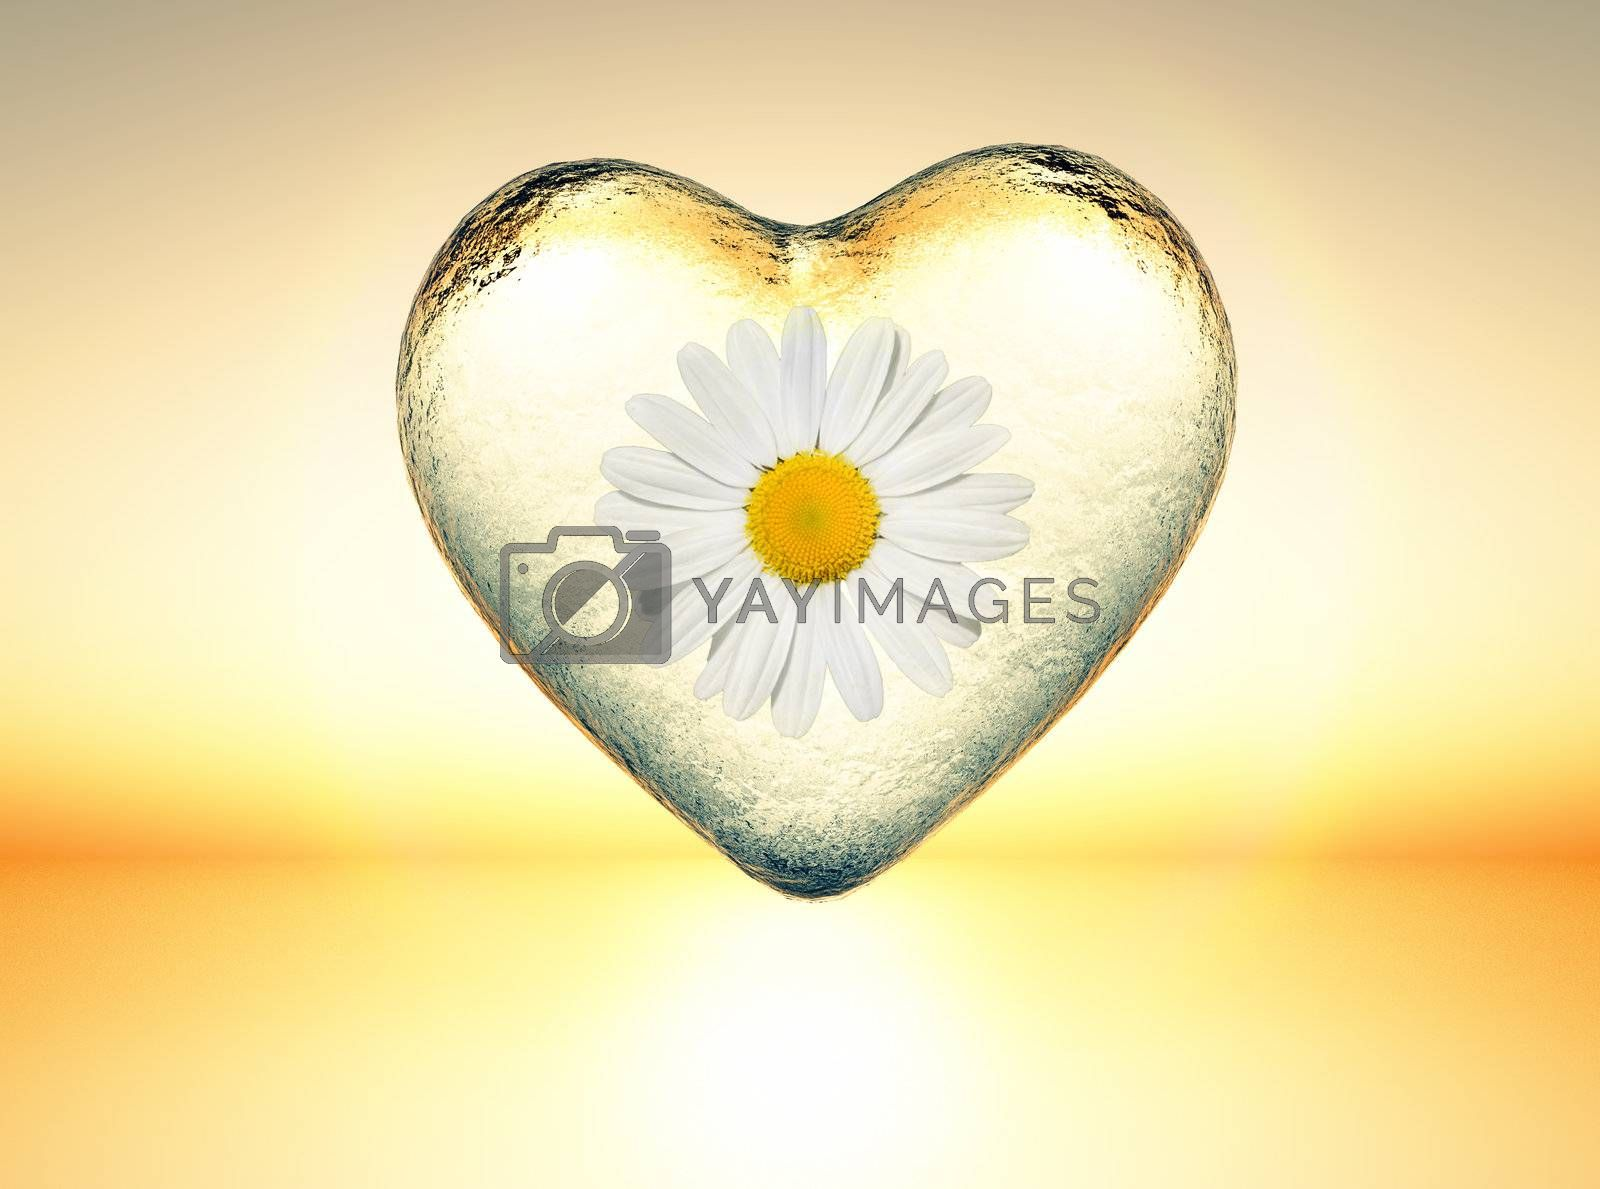 icy heart with a daisy inside